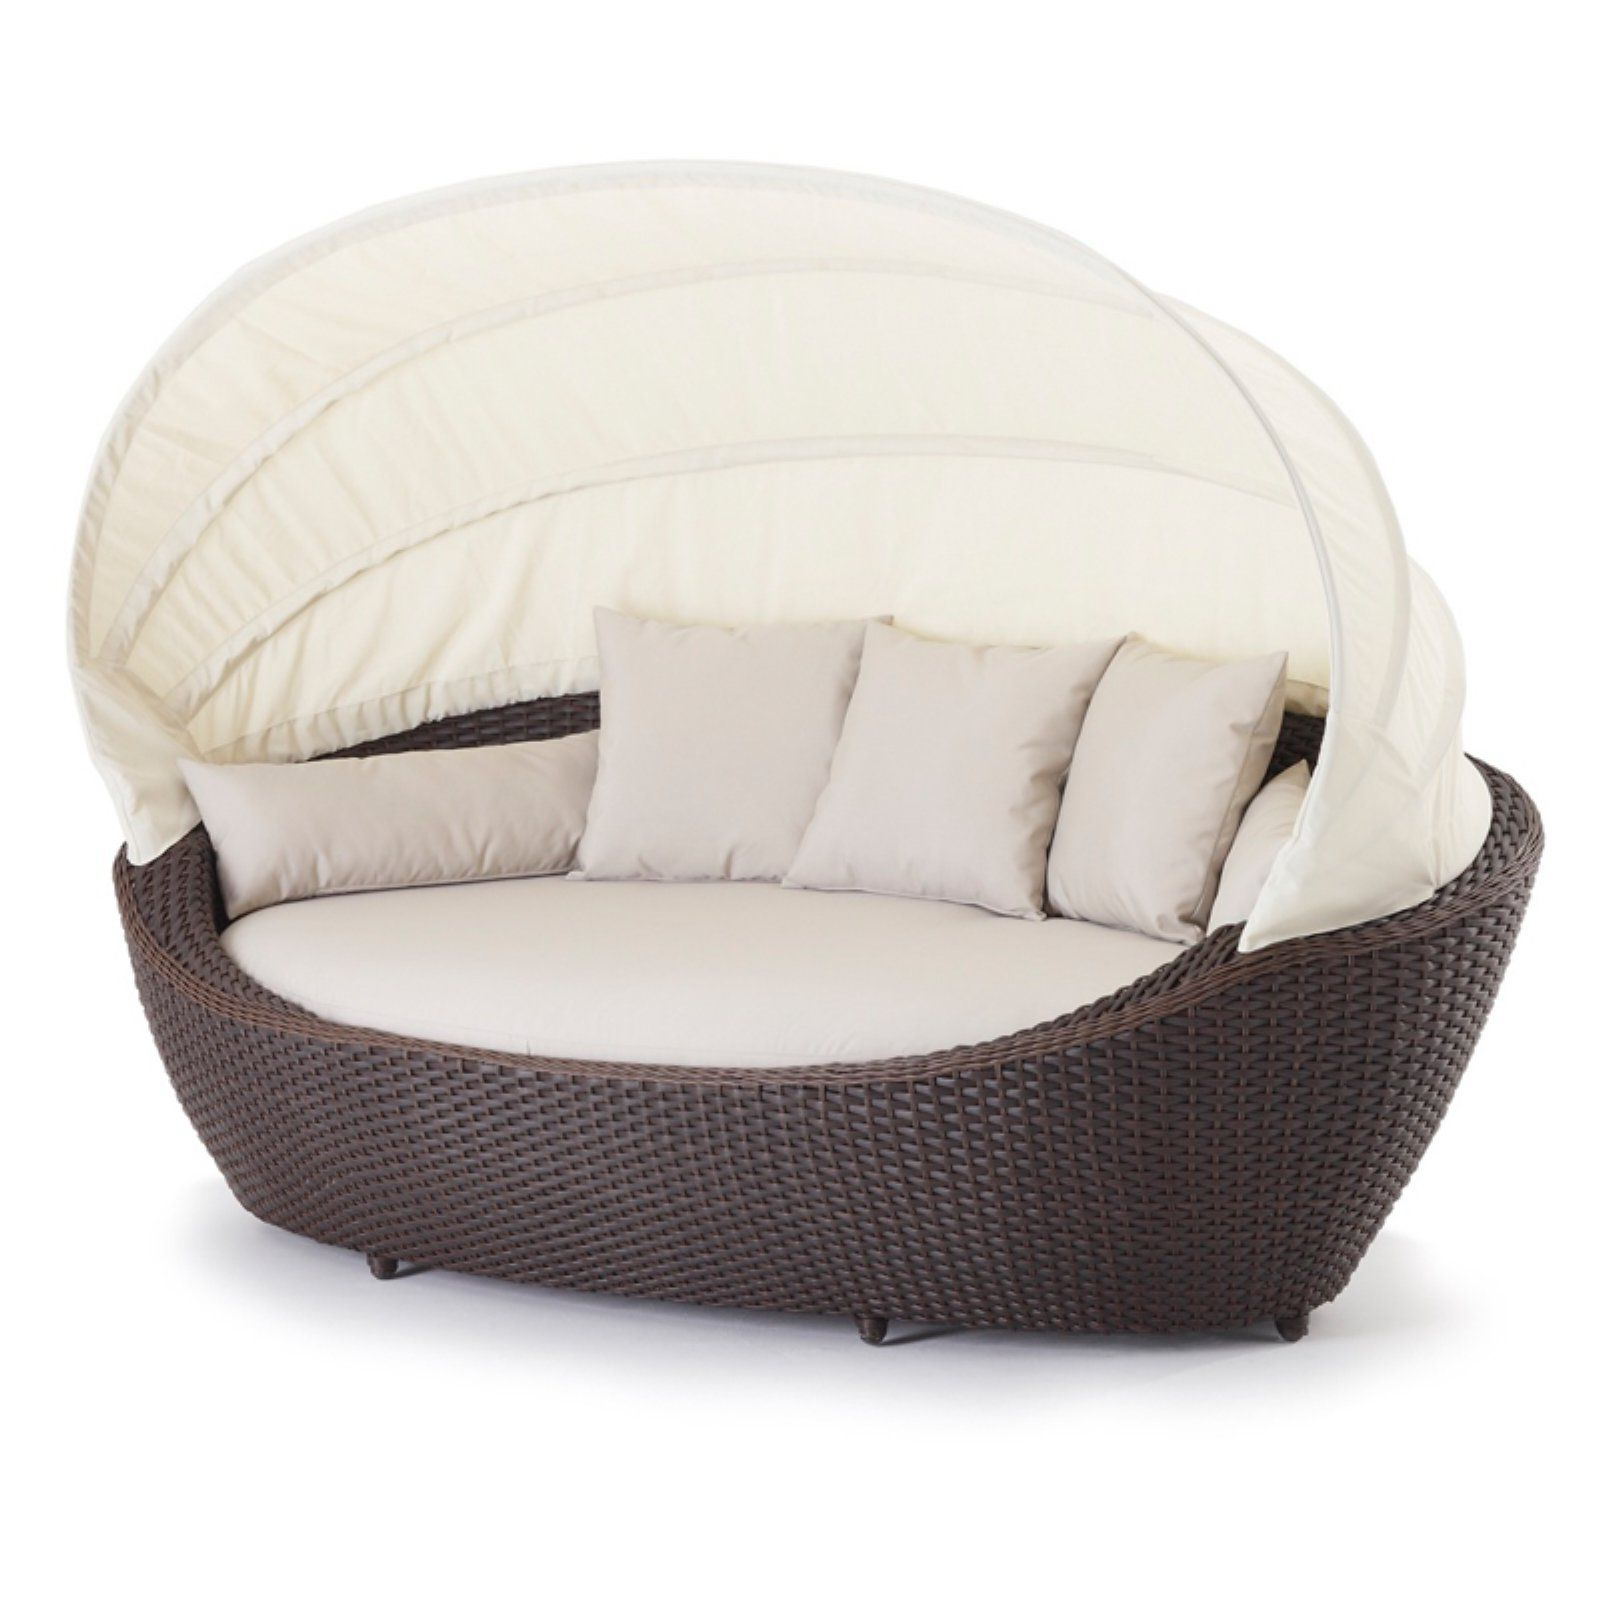 Best And Newest Gilbreath Daybeds With Cushions With Regard To Outdoor Domus Ventures Paradise Large Wicker Patio Daybed (View 4 of 20)